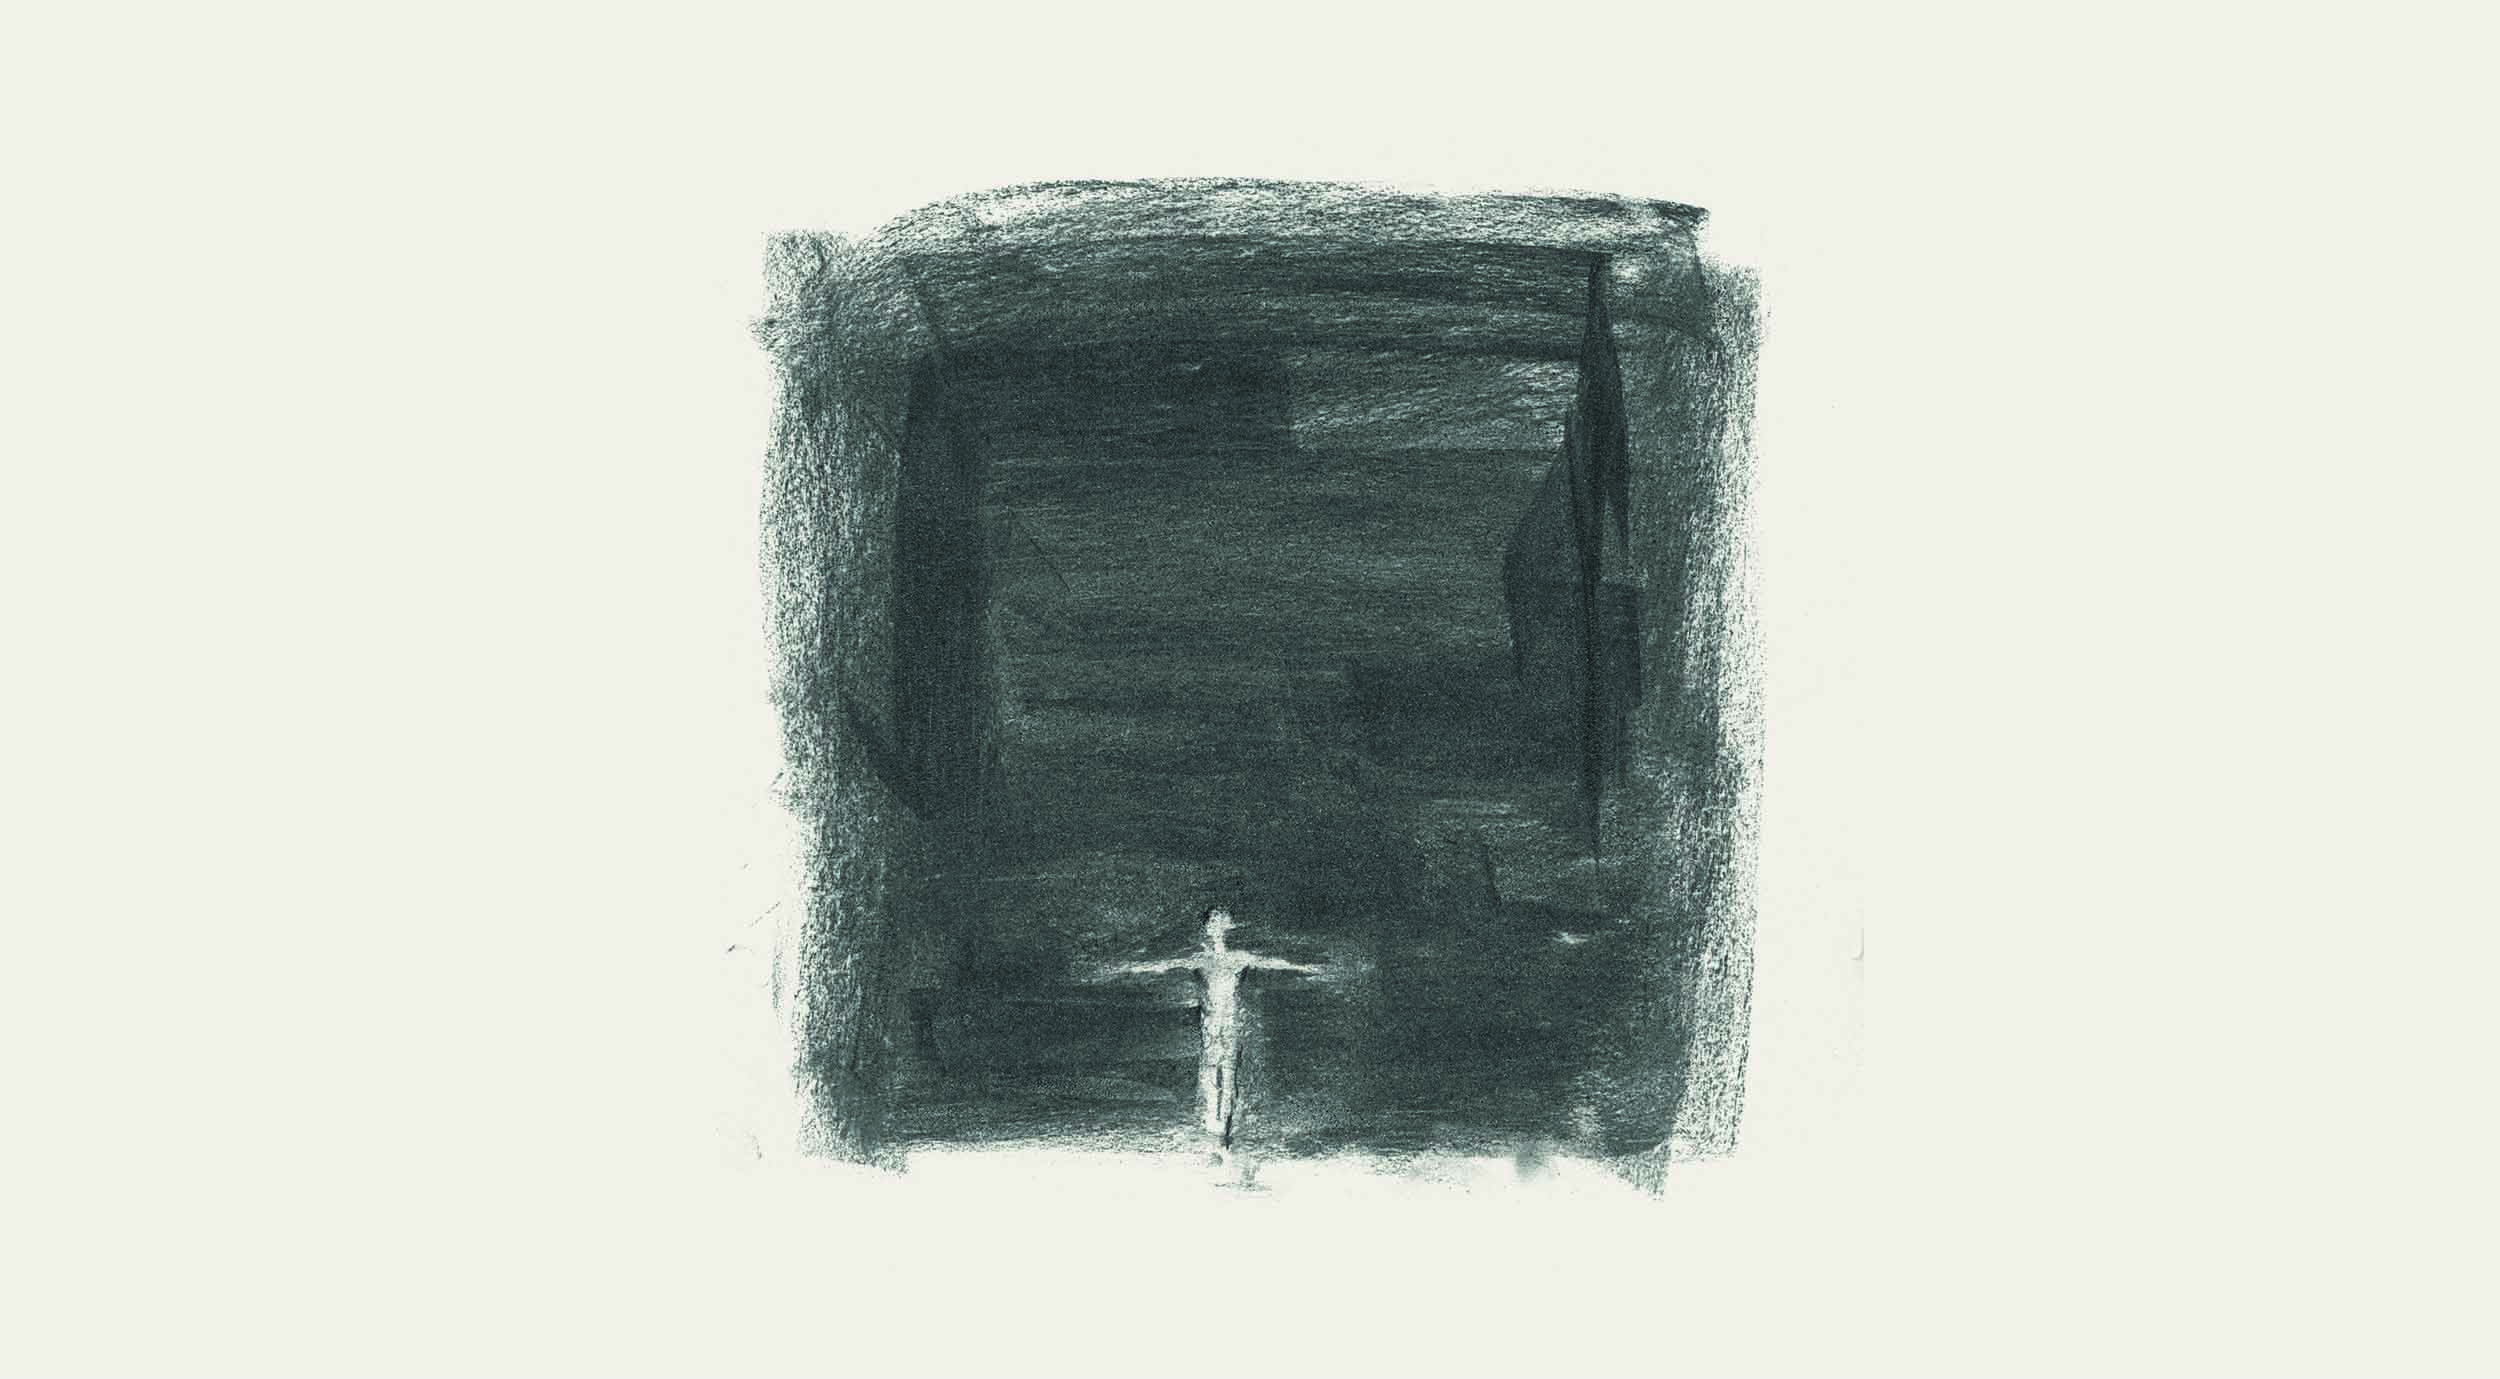 white figure at the bottom of a charcoal black background